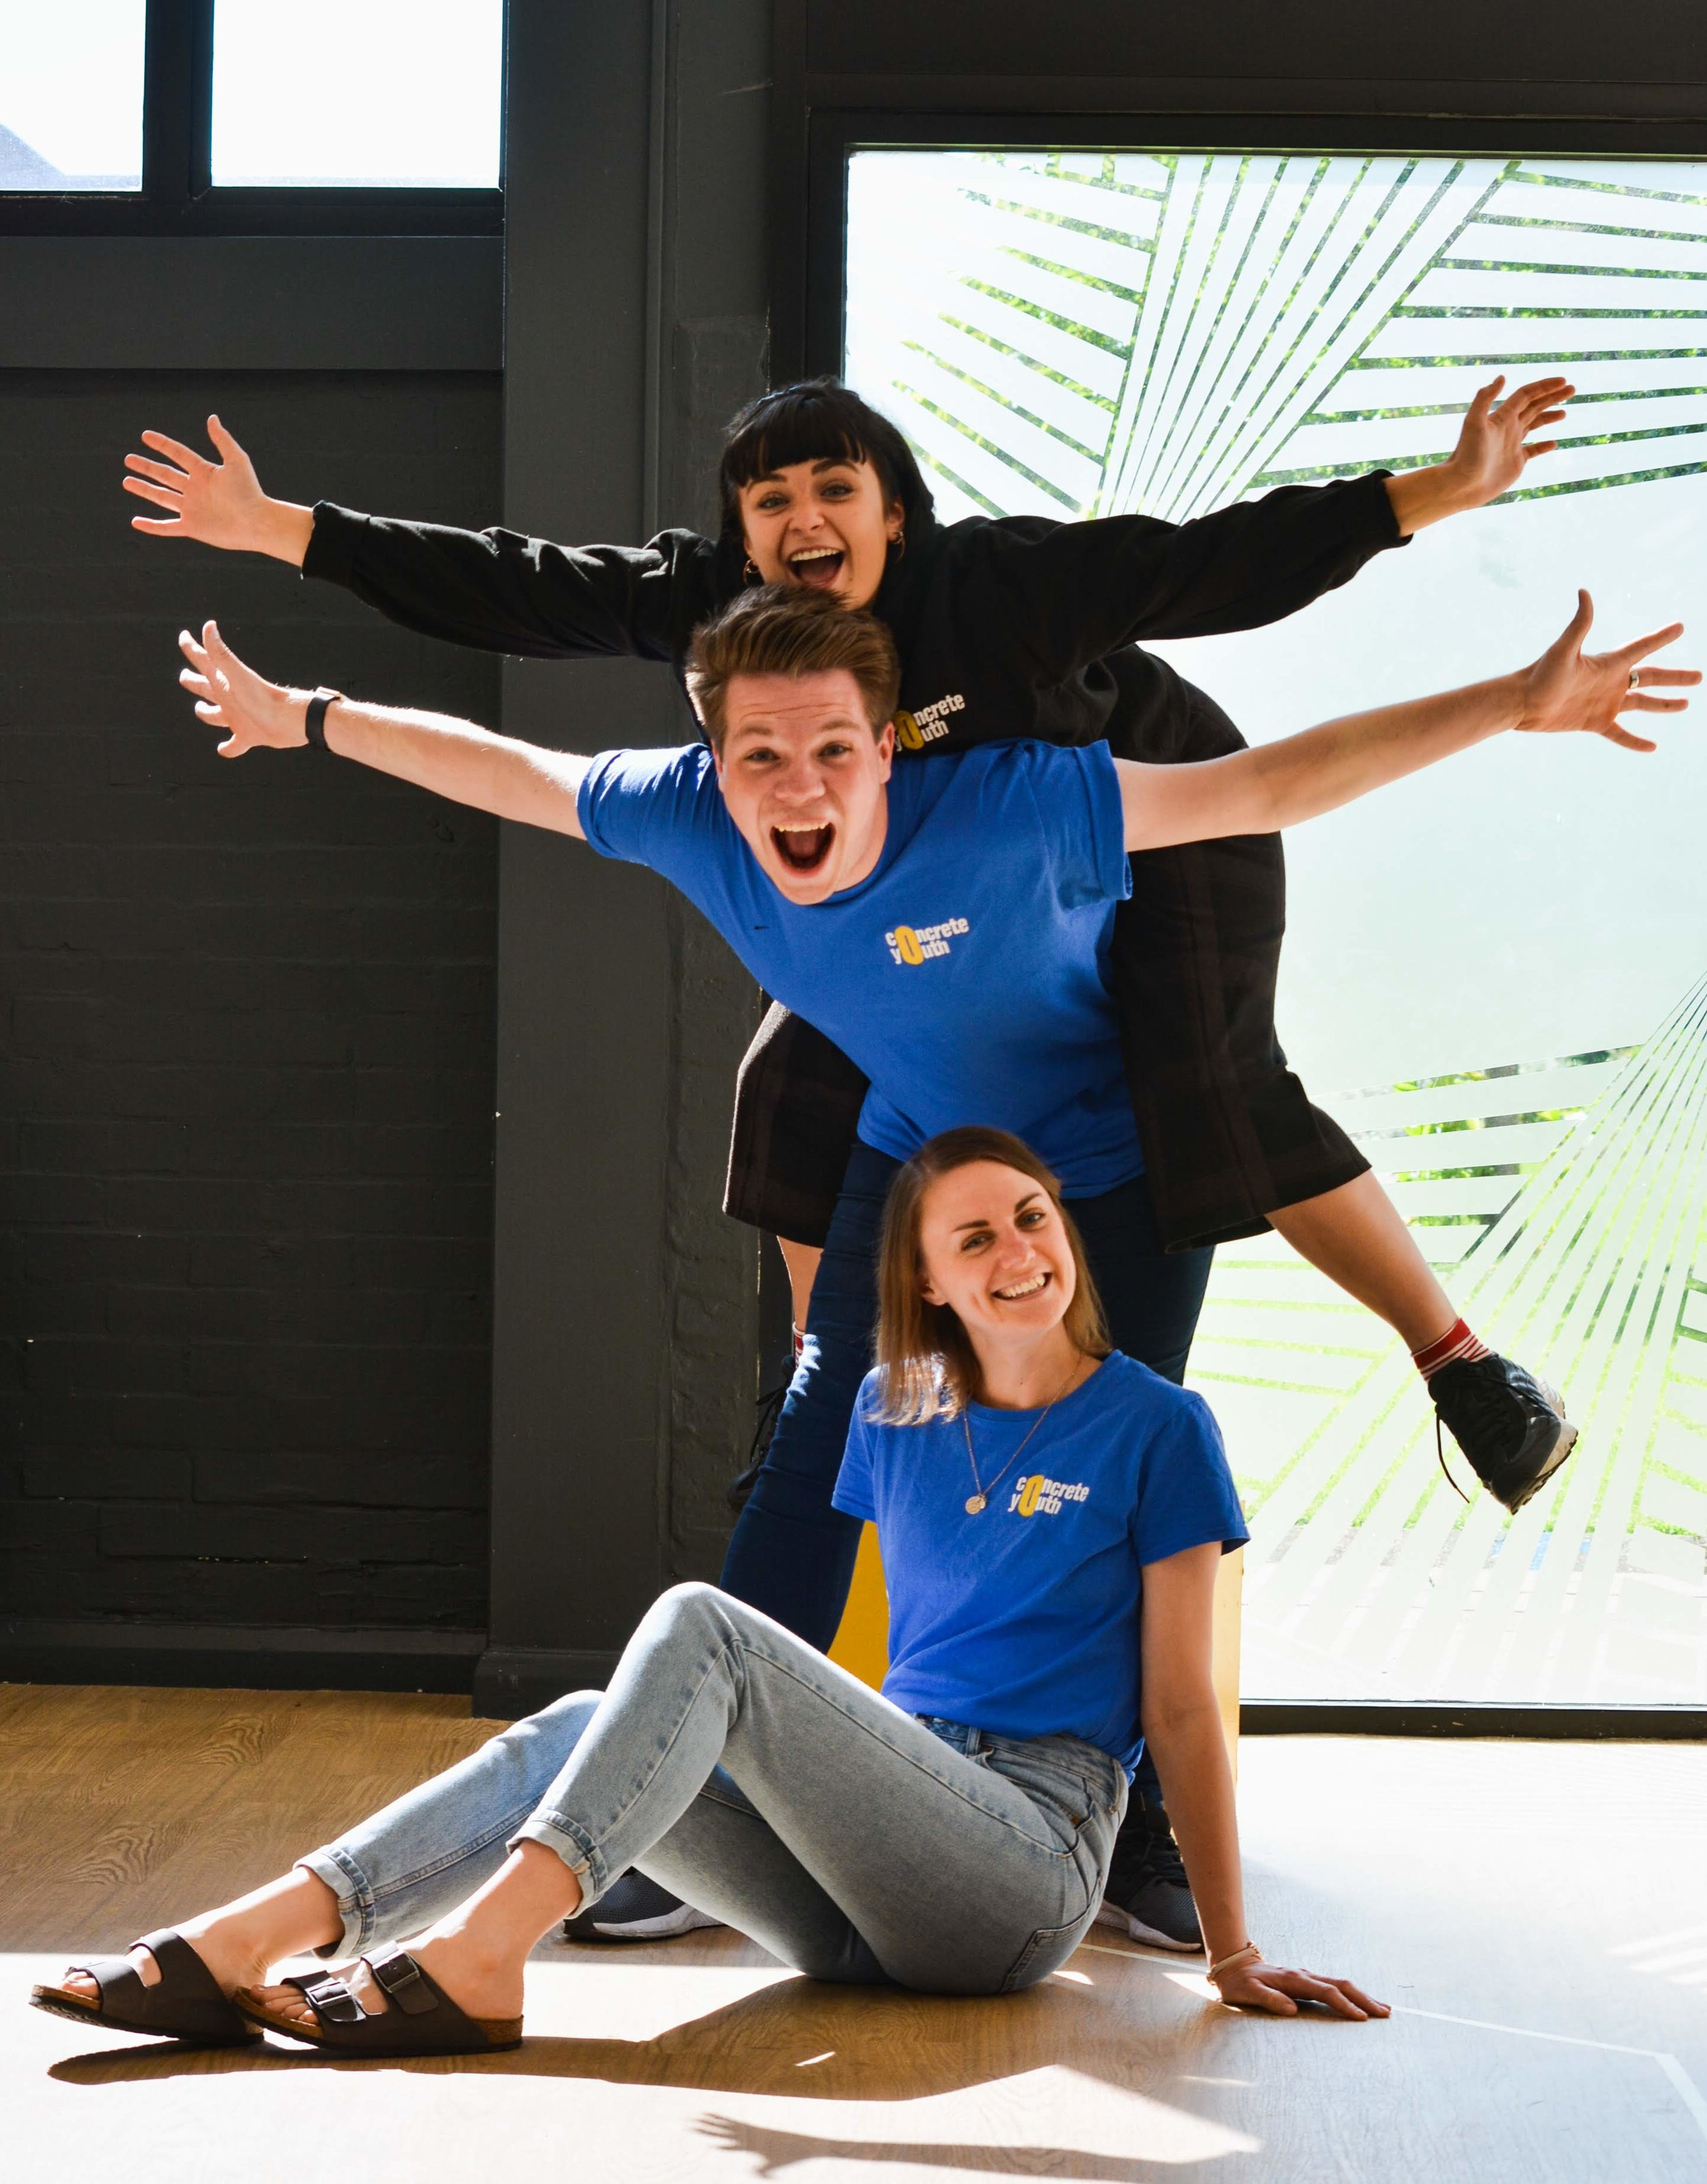 Introducing Concrete Youth. From top to bottom: Annabel Streeton (Associate Director), Daniel Swift (Artistic Director), Elle Douglas (Education Coordinator). Photo:  EHD Photography .